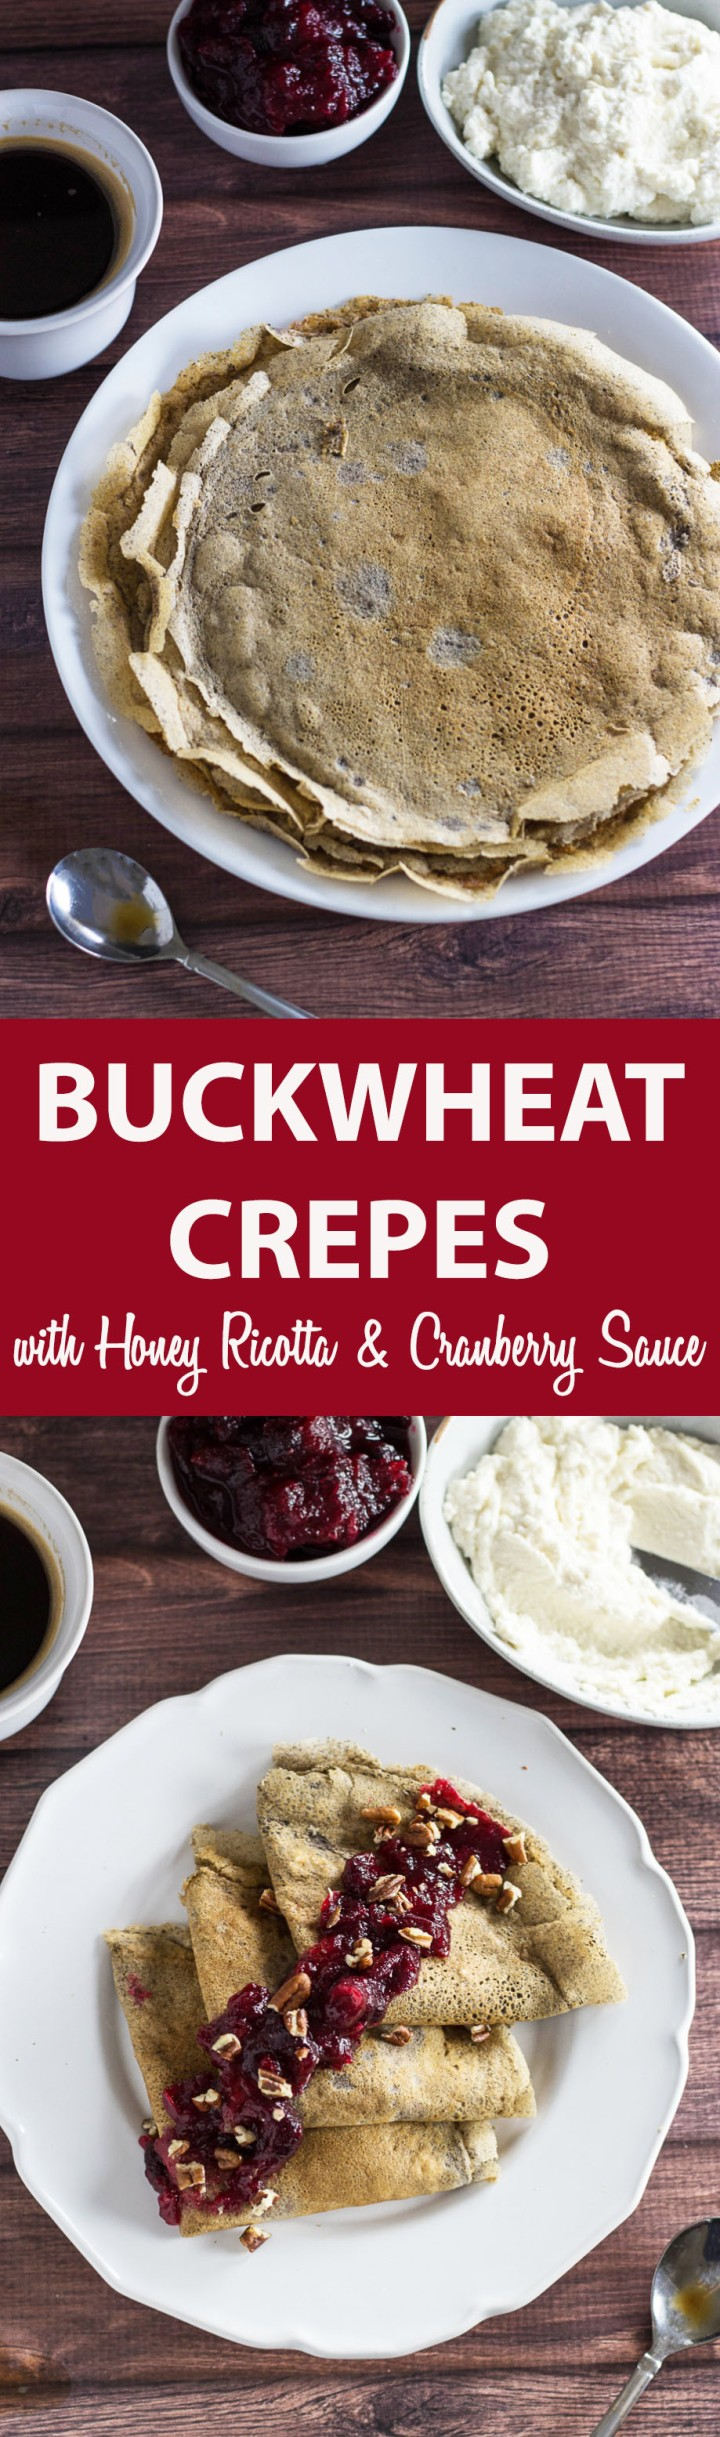 buckwheat crepes with cranberry sauce, for pinterest 2 final